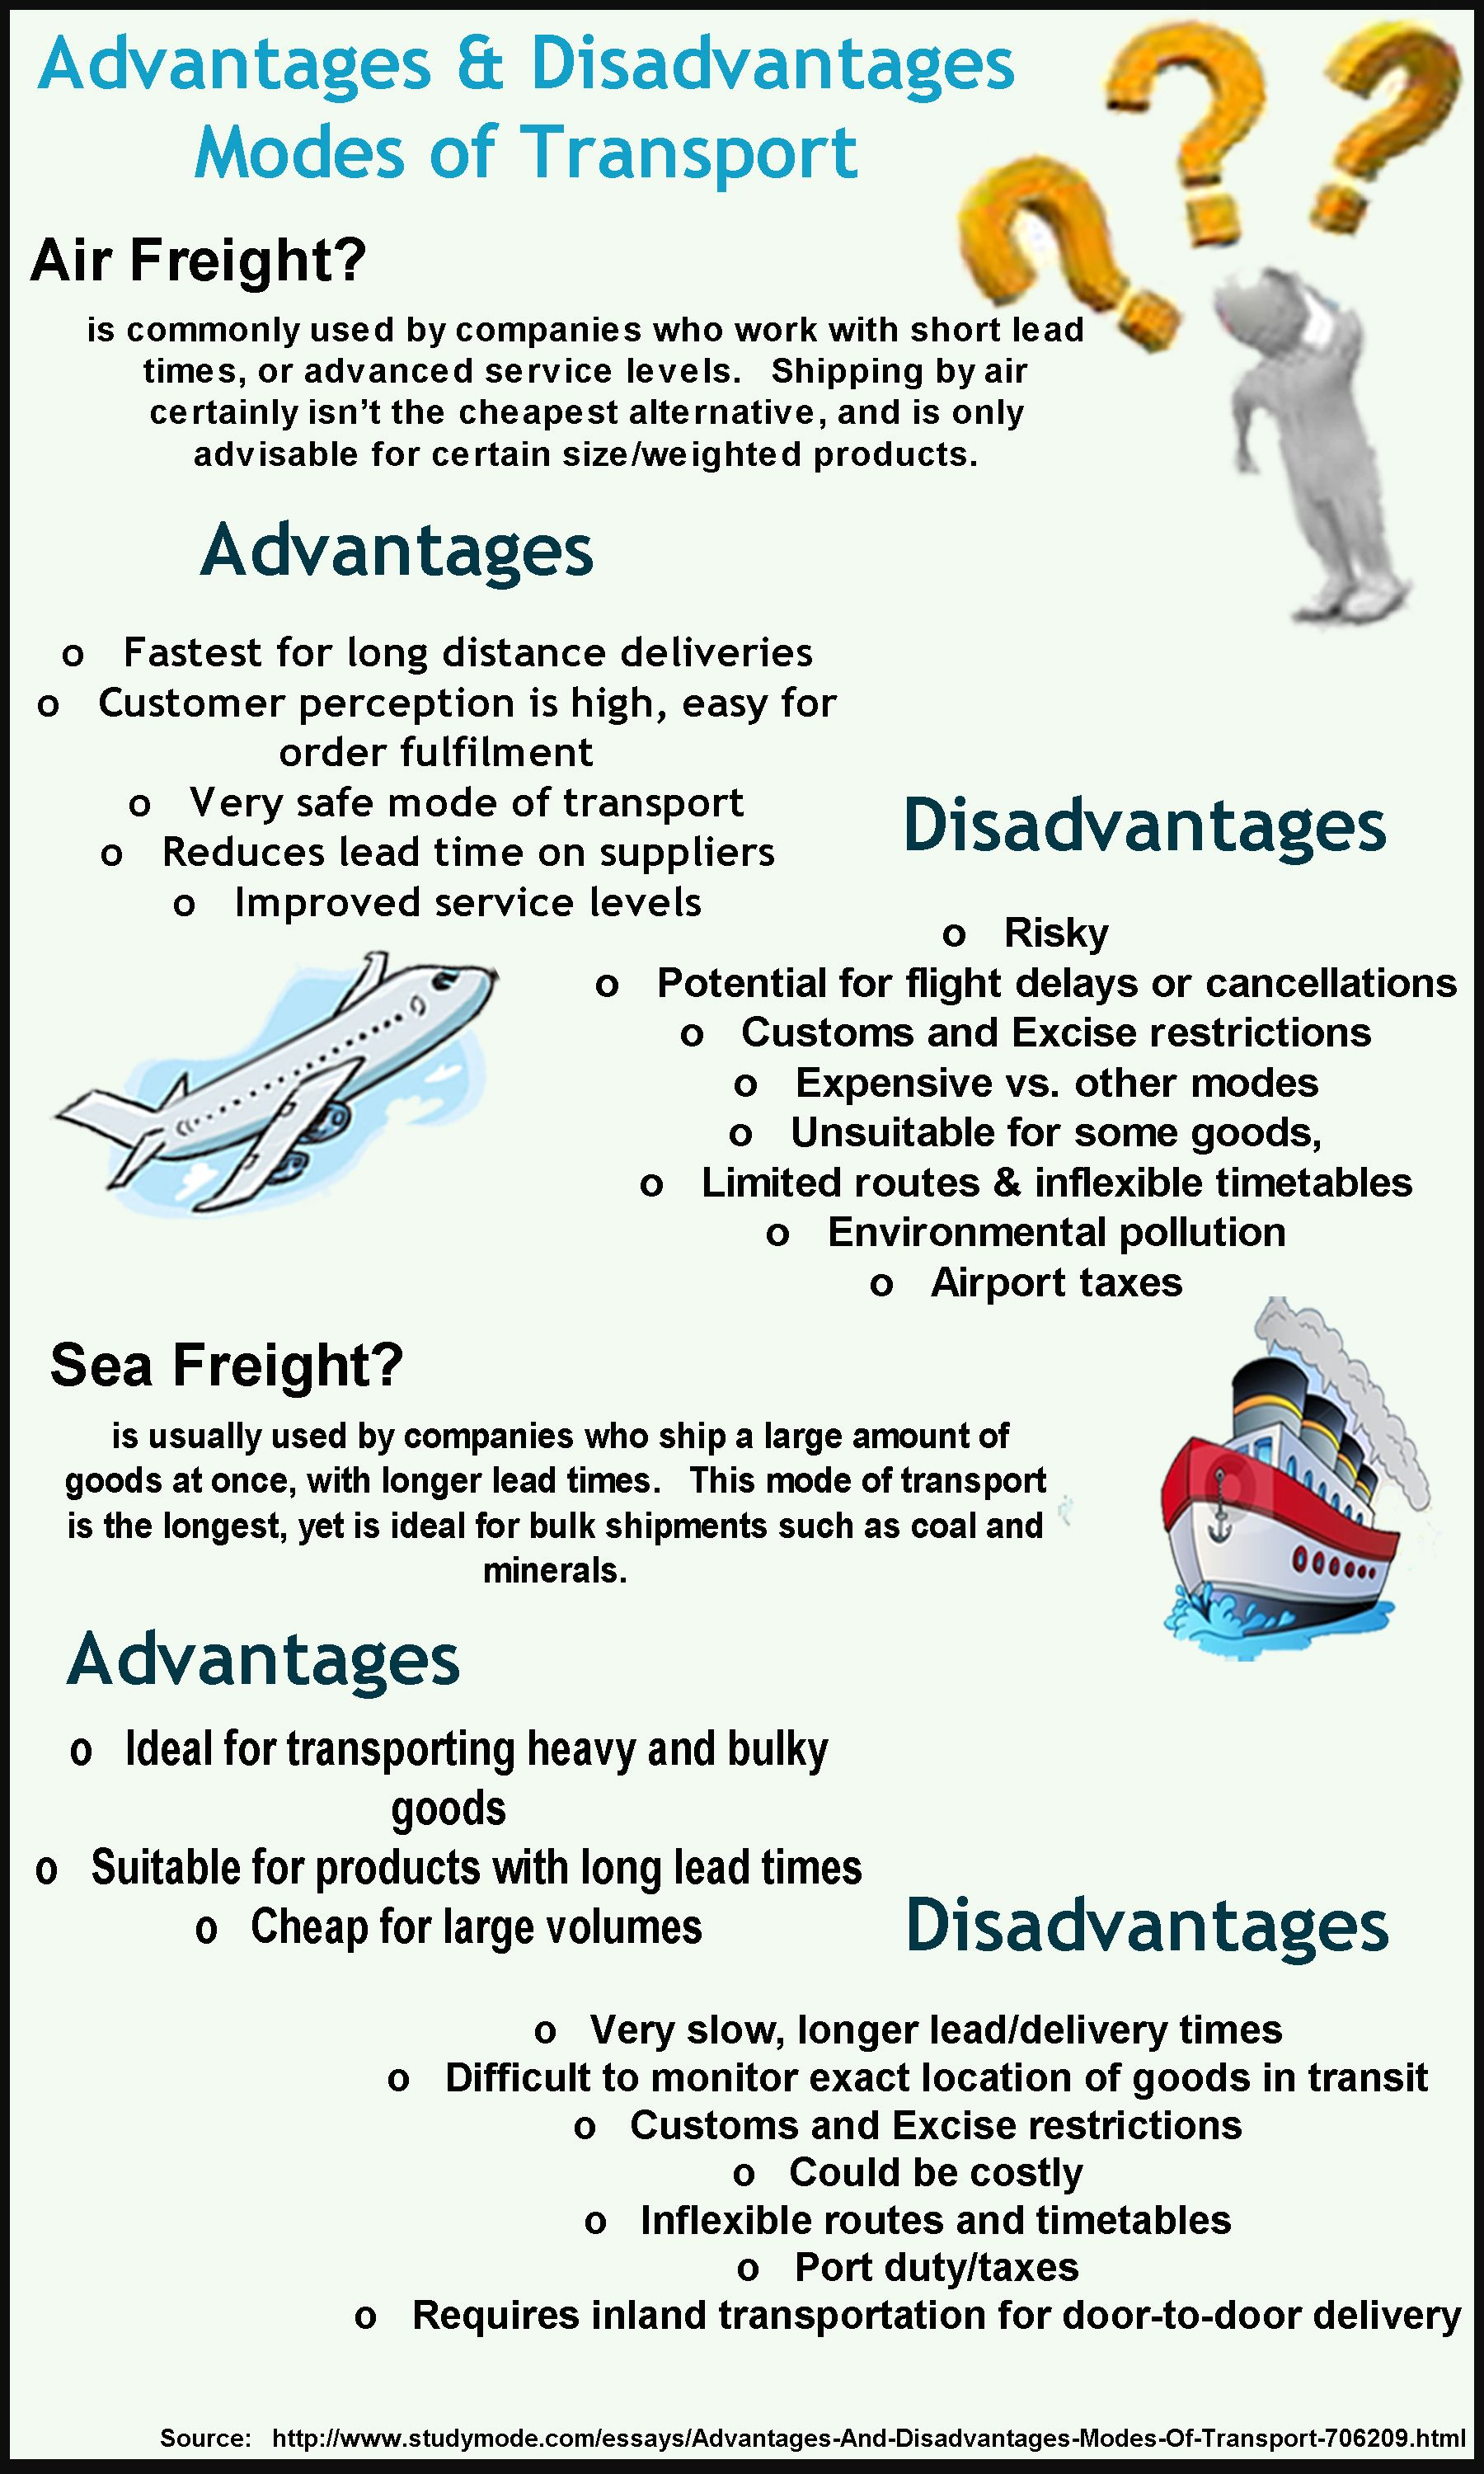 003 Short Essay On Transportation Example Outstanding My Favourite Means Of Transport Public Water Full